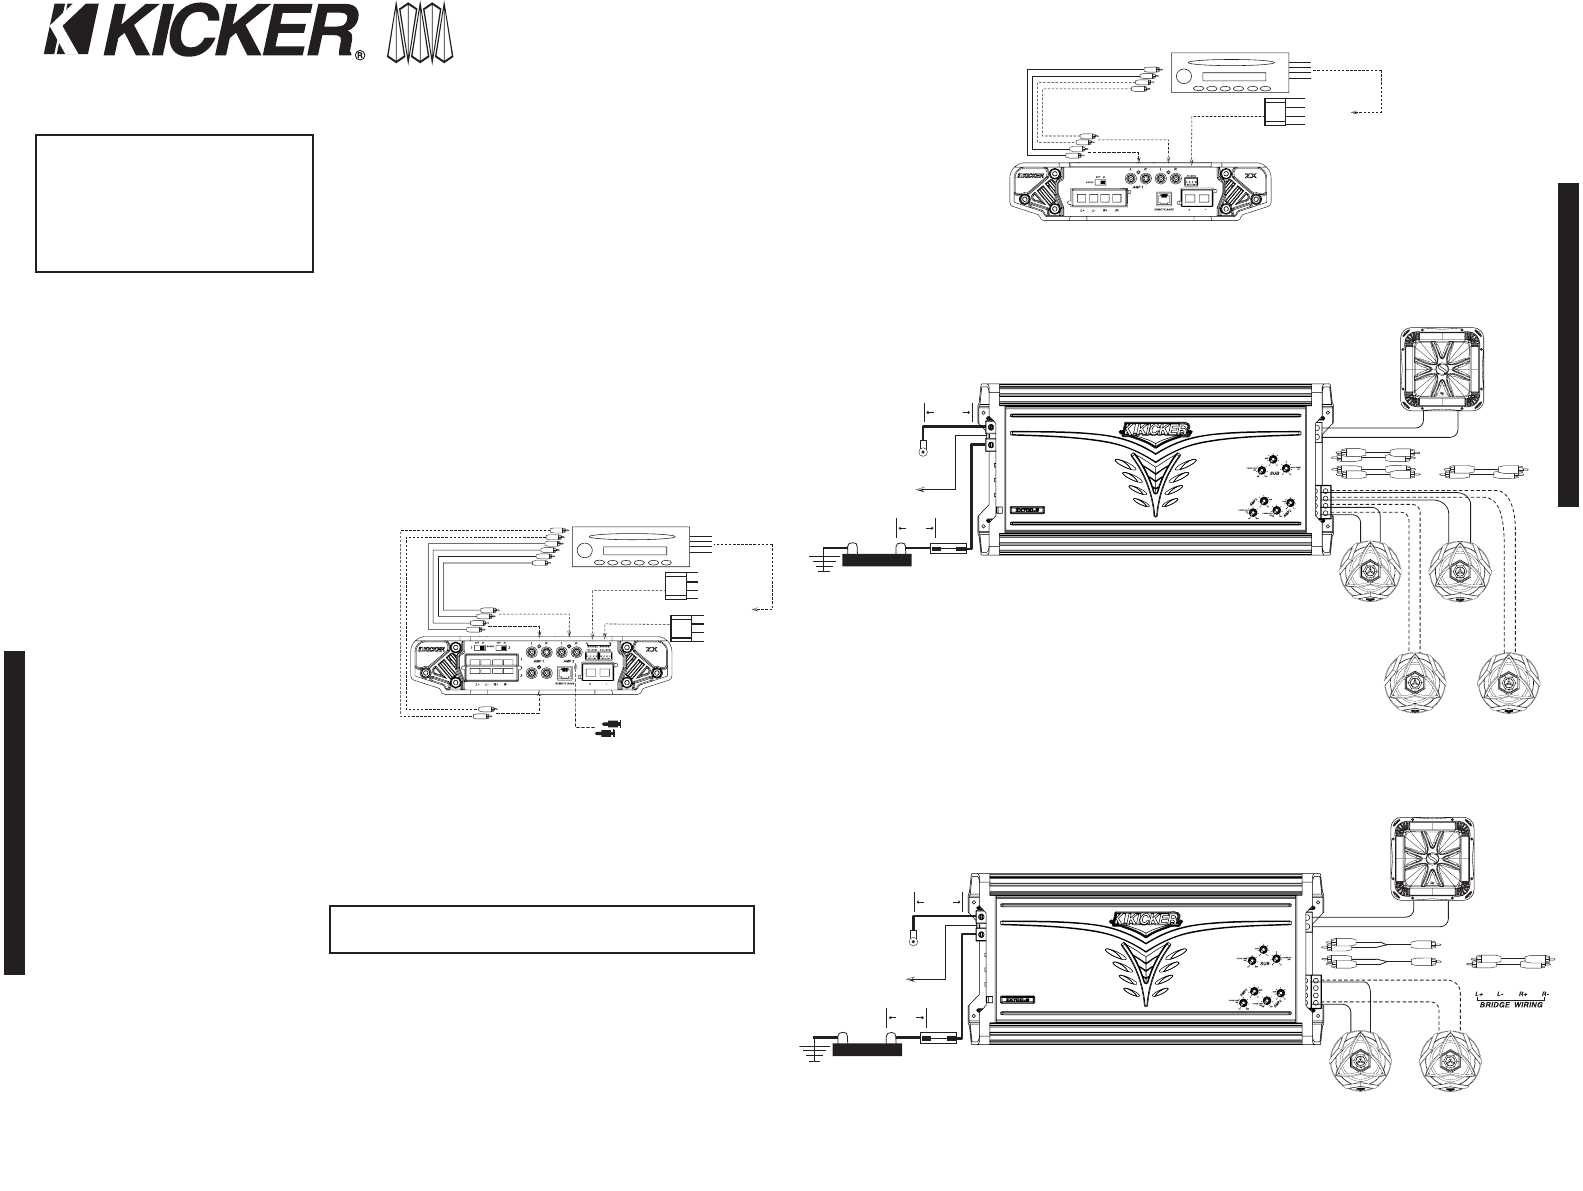 066e7a5c 7e45 4310 8395 bdfb9b1e7b57 bg2 page 2 of kicker stereo amplifier zx550 3 user guide Kicker 6 Channel Amp at gsmx.co